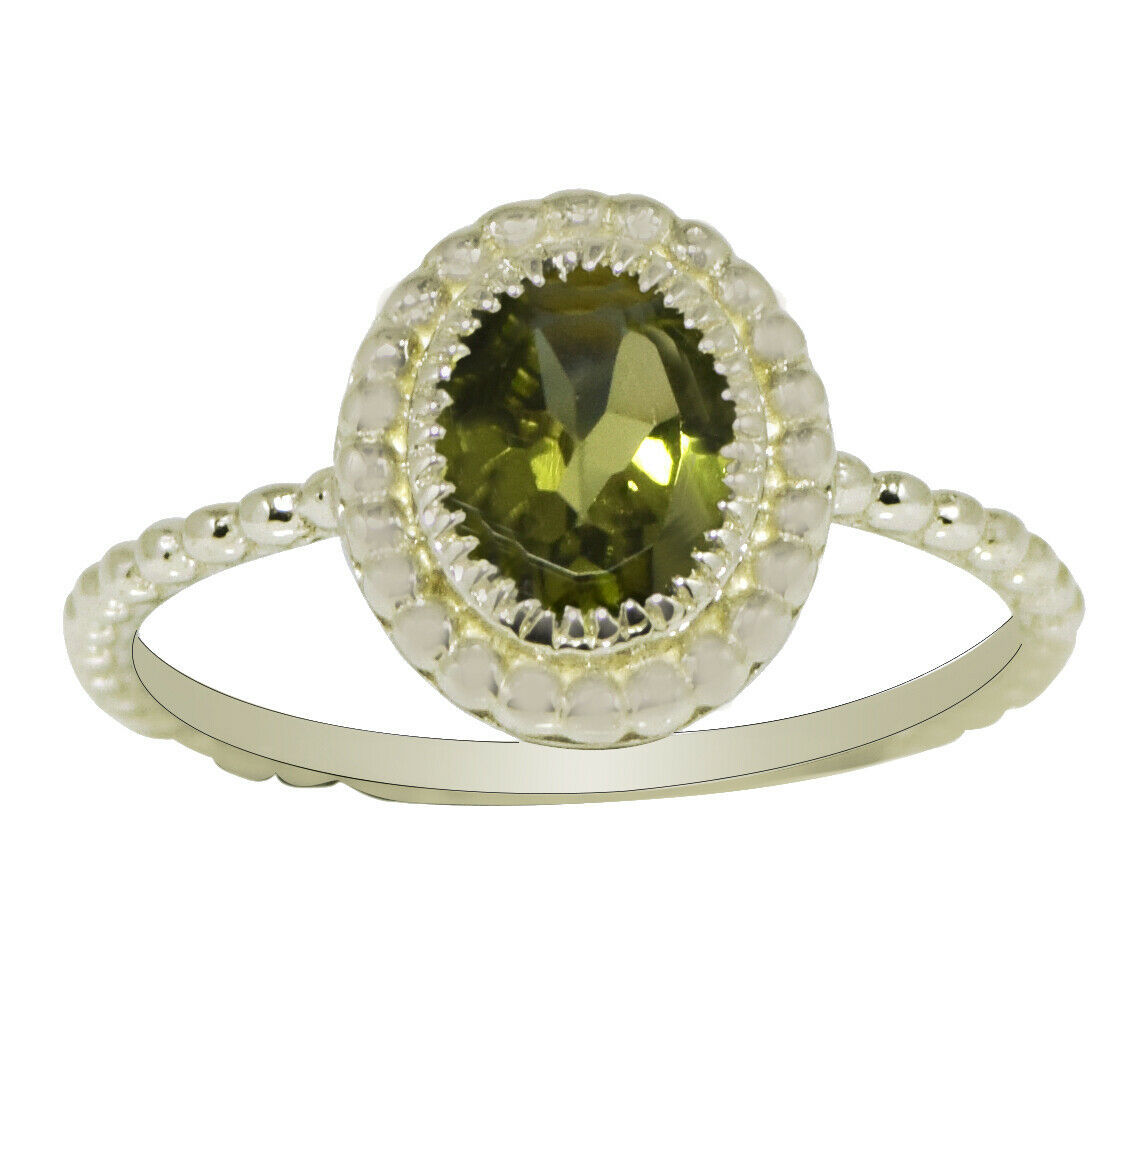 Primary image for 0.85 Ctw Peridot Gemstone 925 Sterling Silver Solitaire Stacking Women Ring